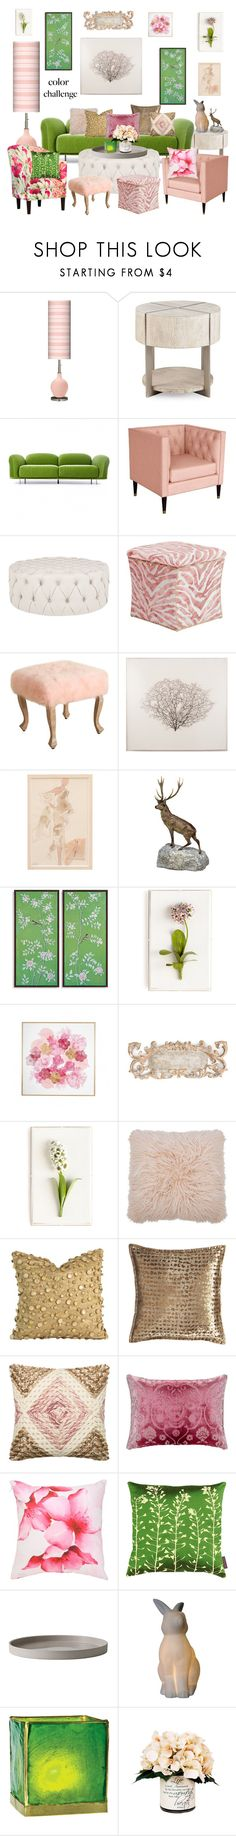 """""""Floral Blush Forest"""" by leiastyle ❤ liked on Polyvore featuring interior, interiors, interior design, home, home decor, interior decorating, Moooi, Nate Berkus, Safavieh and Mirror Image Home"""